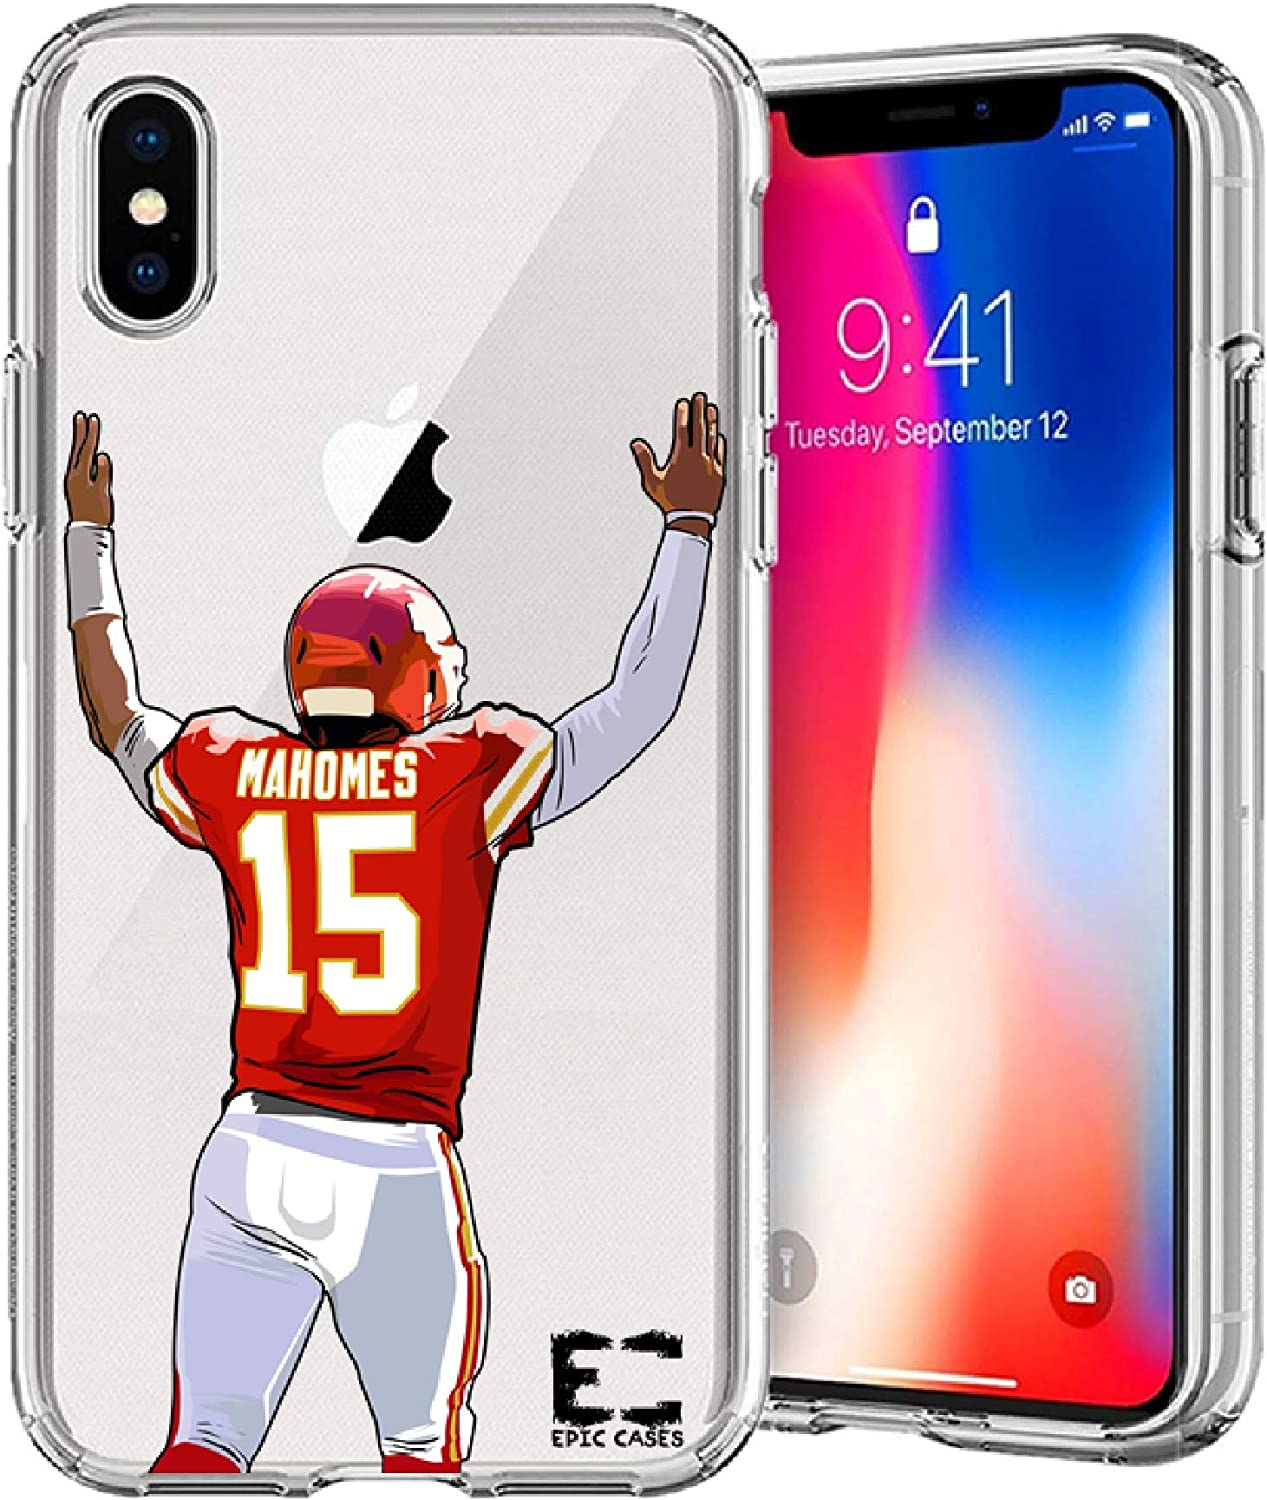 iPhone6/6S iPhone 7/iPhone 8 Case Epic Cases Ultra Slim Crystal Clear Football Series Soft Transparent TPU Case Cover Apple (iPhone 6/6s) (iPhone 7) (iPhone 8) (Mahomes Chiefs, iPhone 6/7/8)